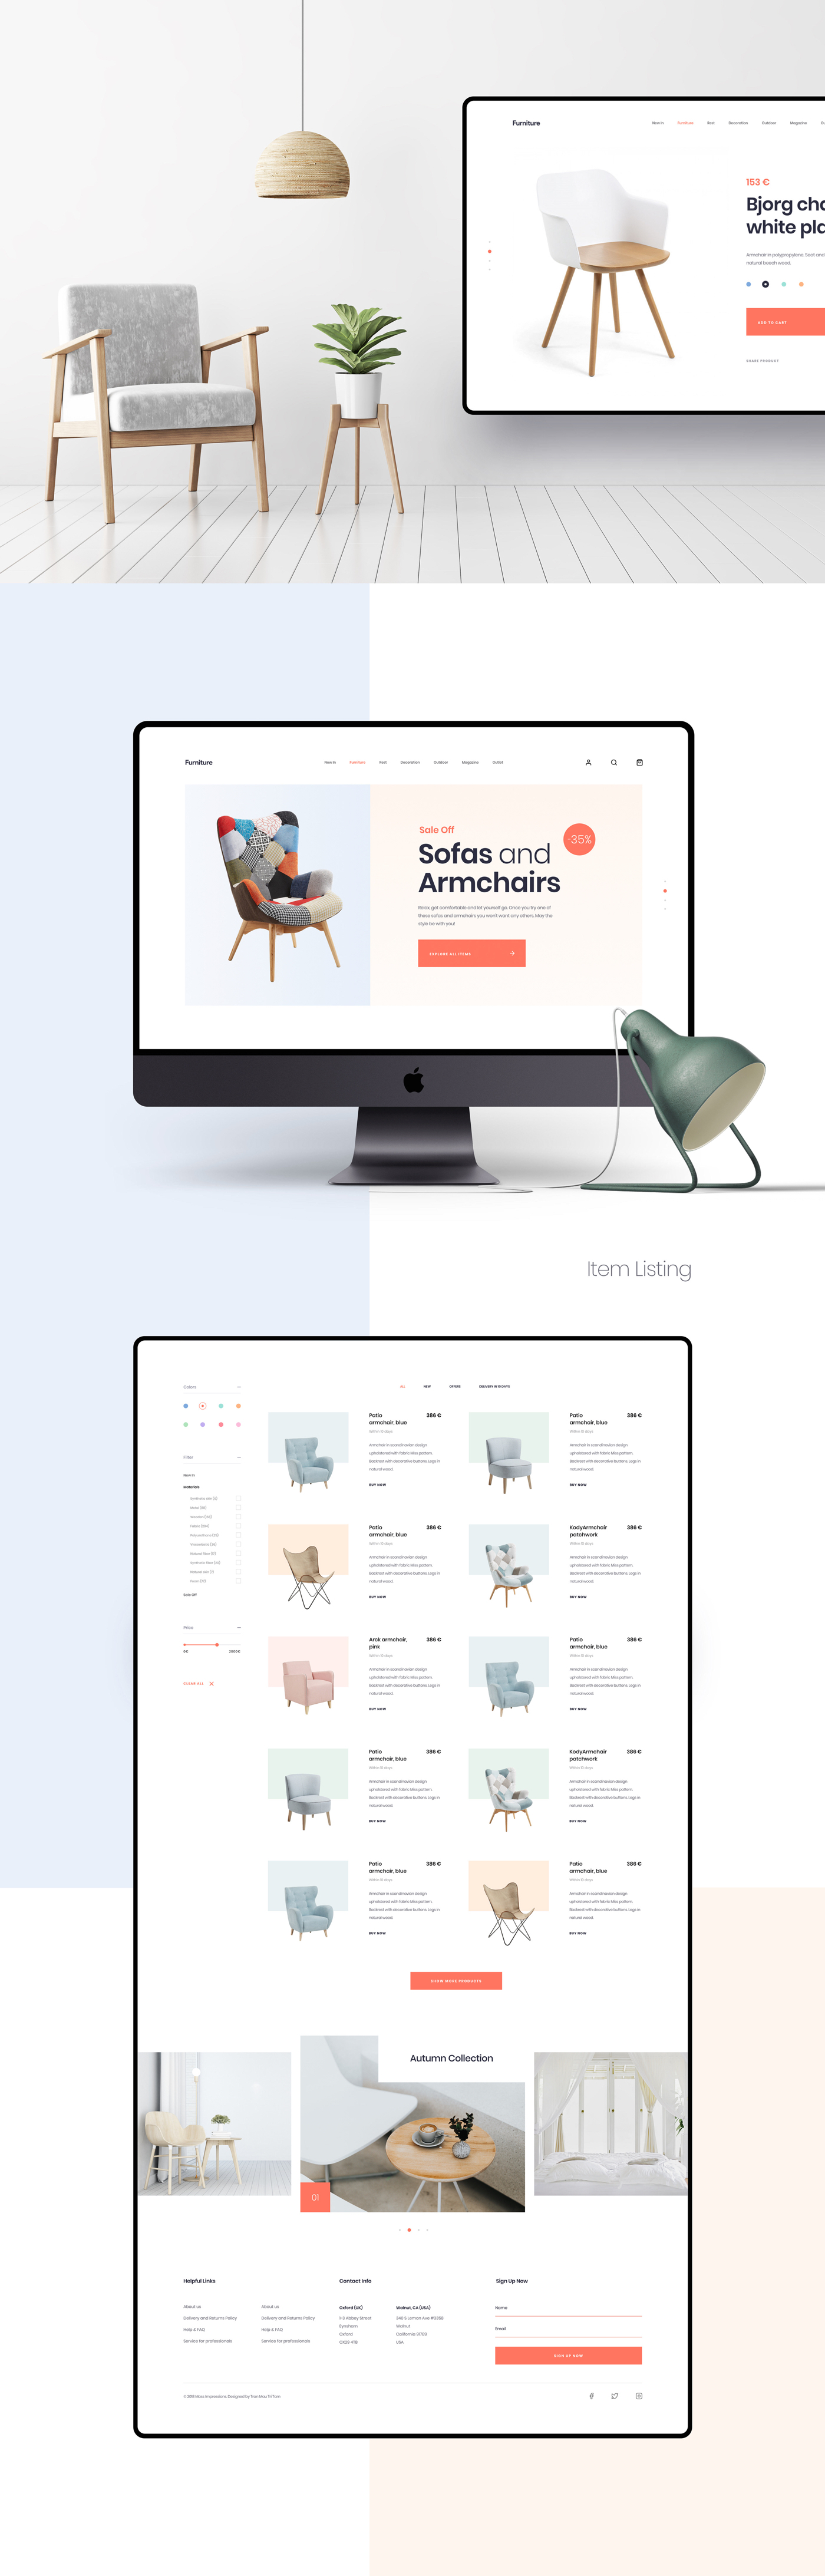 MI Furniture Free Sketch Template - MI Furniture is a Free Multi-Purpose Sketch App Template built to showcase lifestyle, minimalistic and modern furniture and accessory websites. 07 Artboards are included in the design. The artboard is fully editable, layered, carefully organized.